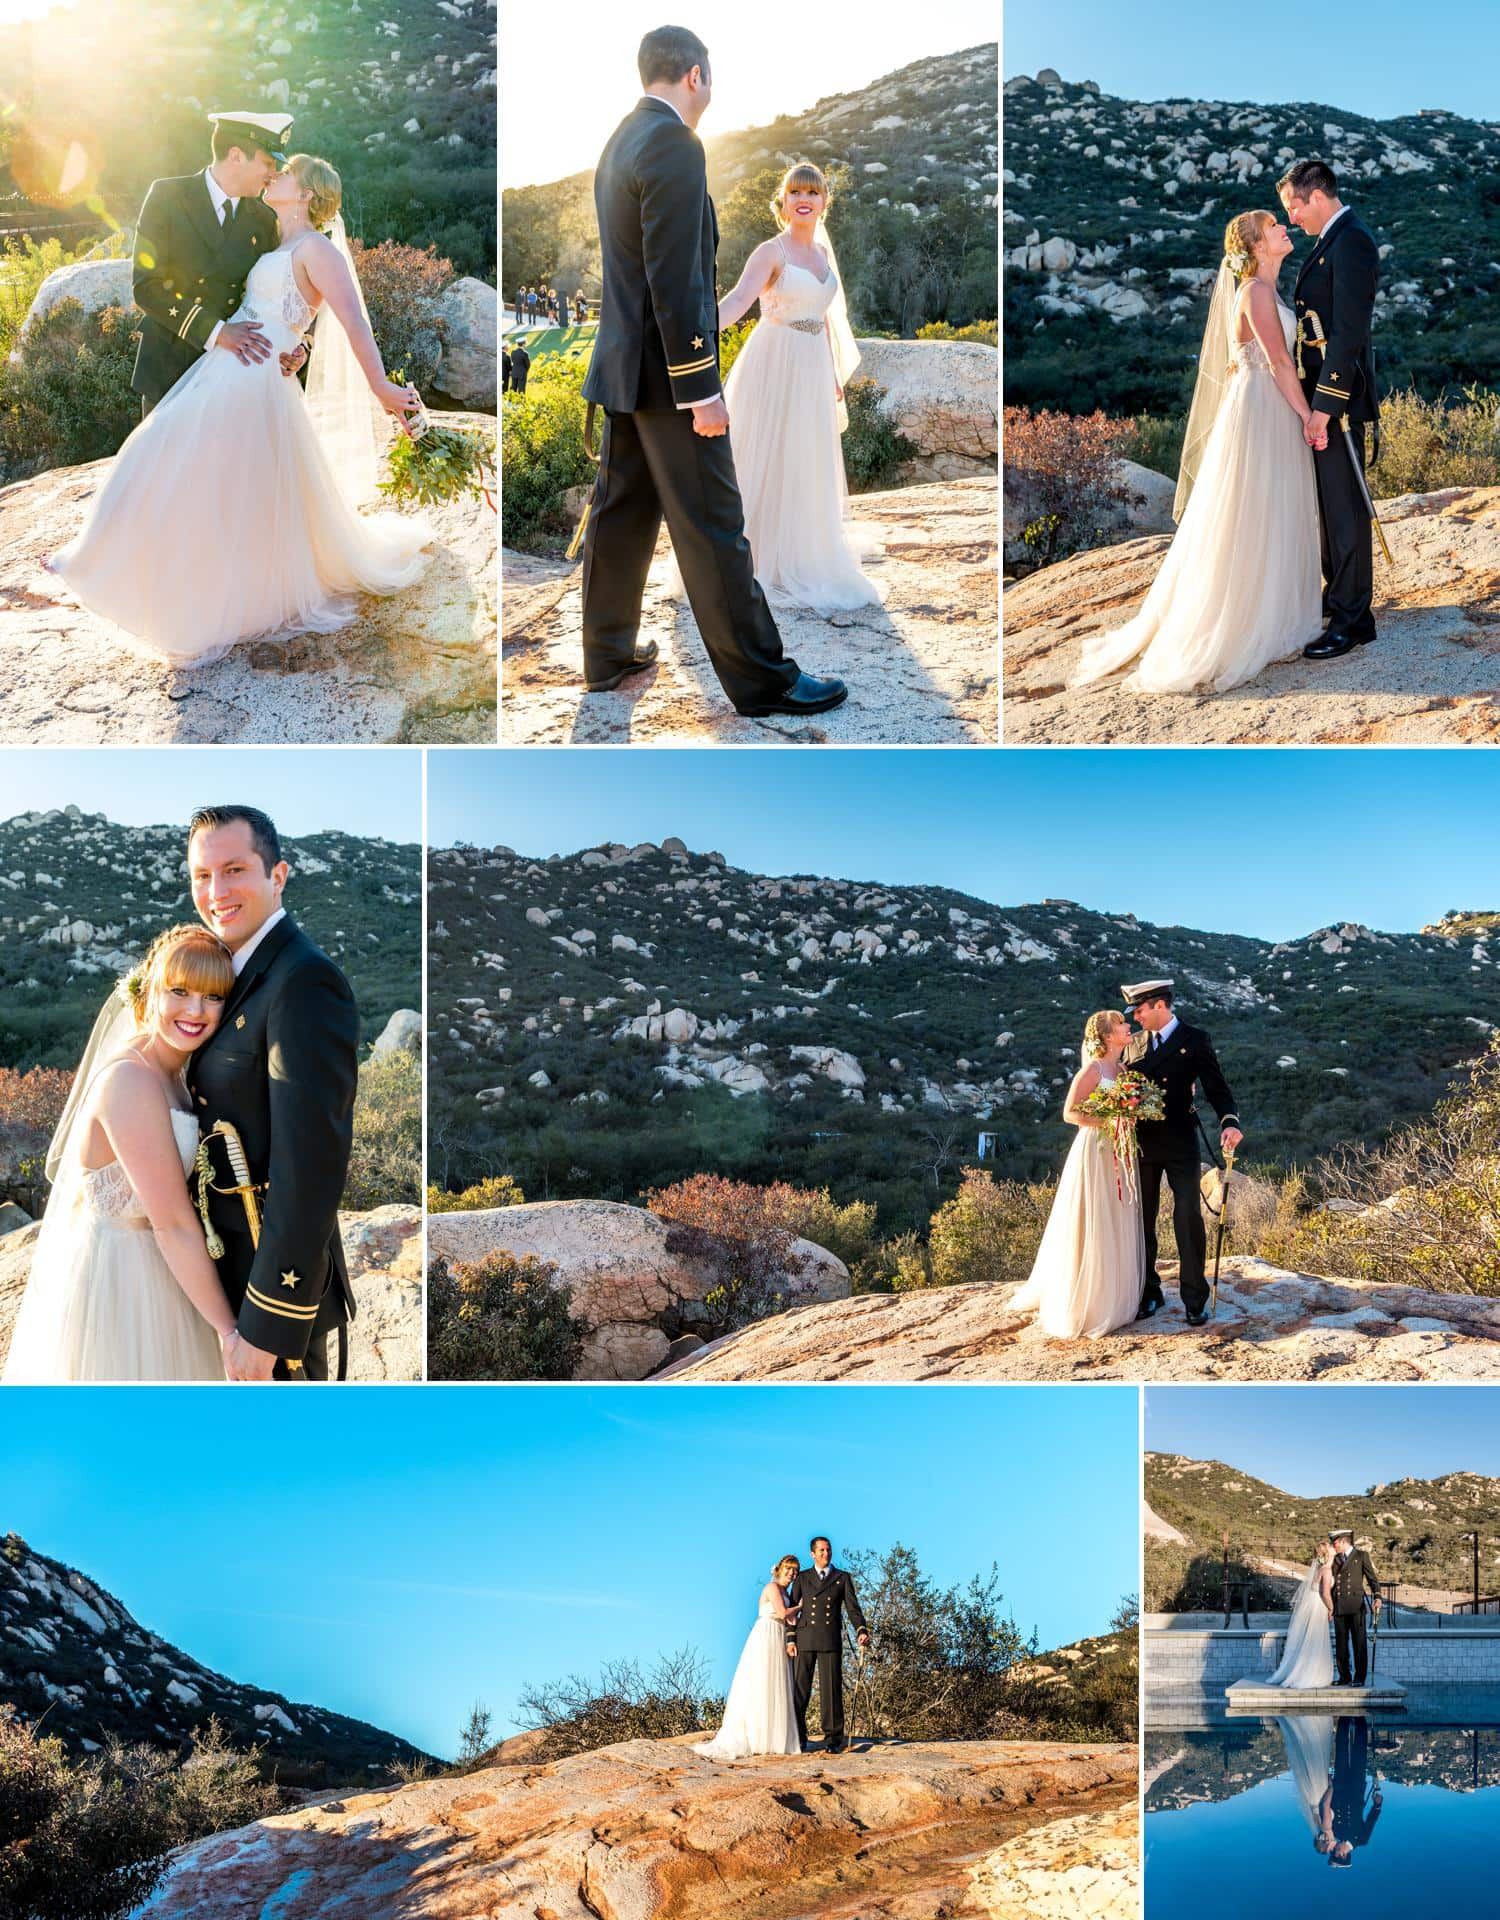 Wedding day outdoor portraits at sunset.